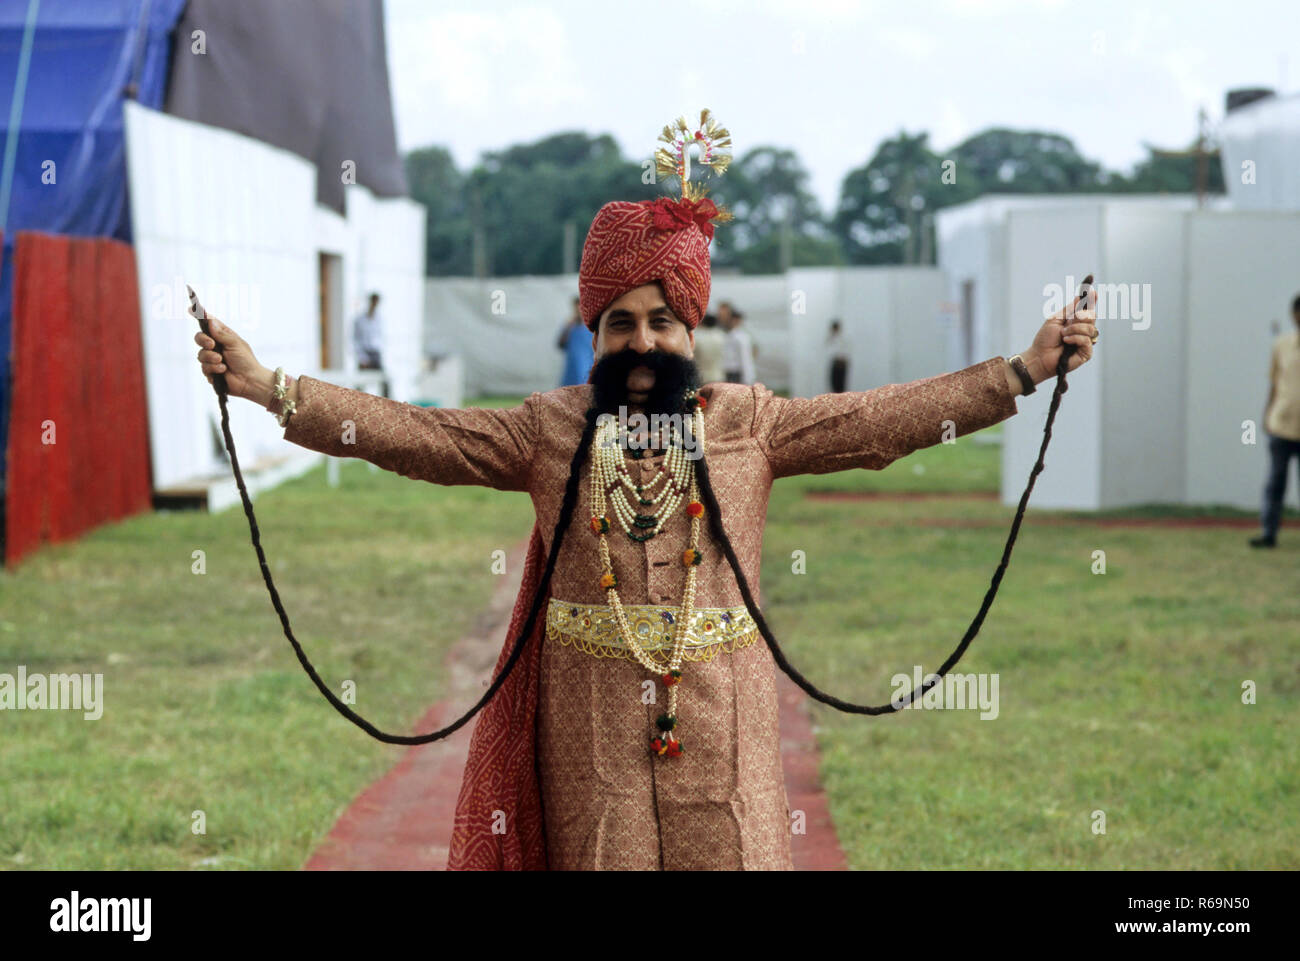 Longest Moustache in world, Ramsing Chauhan, Jaipur, Rajasthan, india NO MR - Stock Image